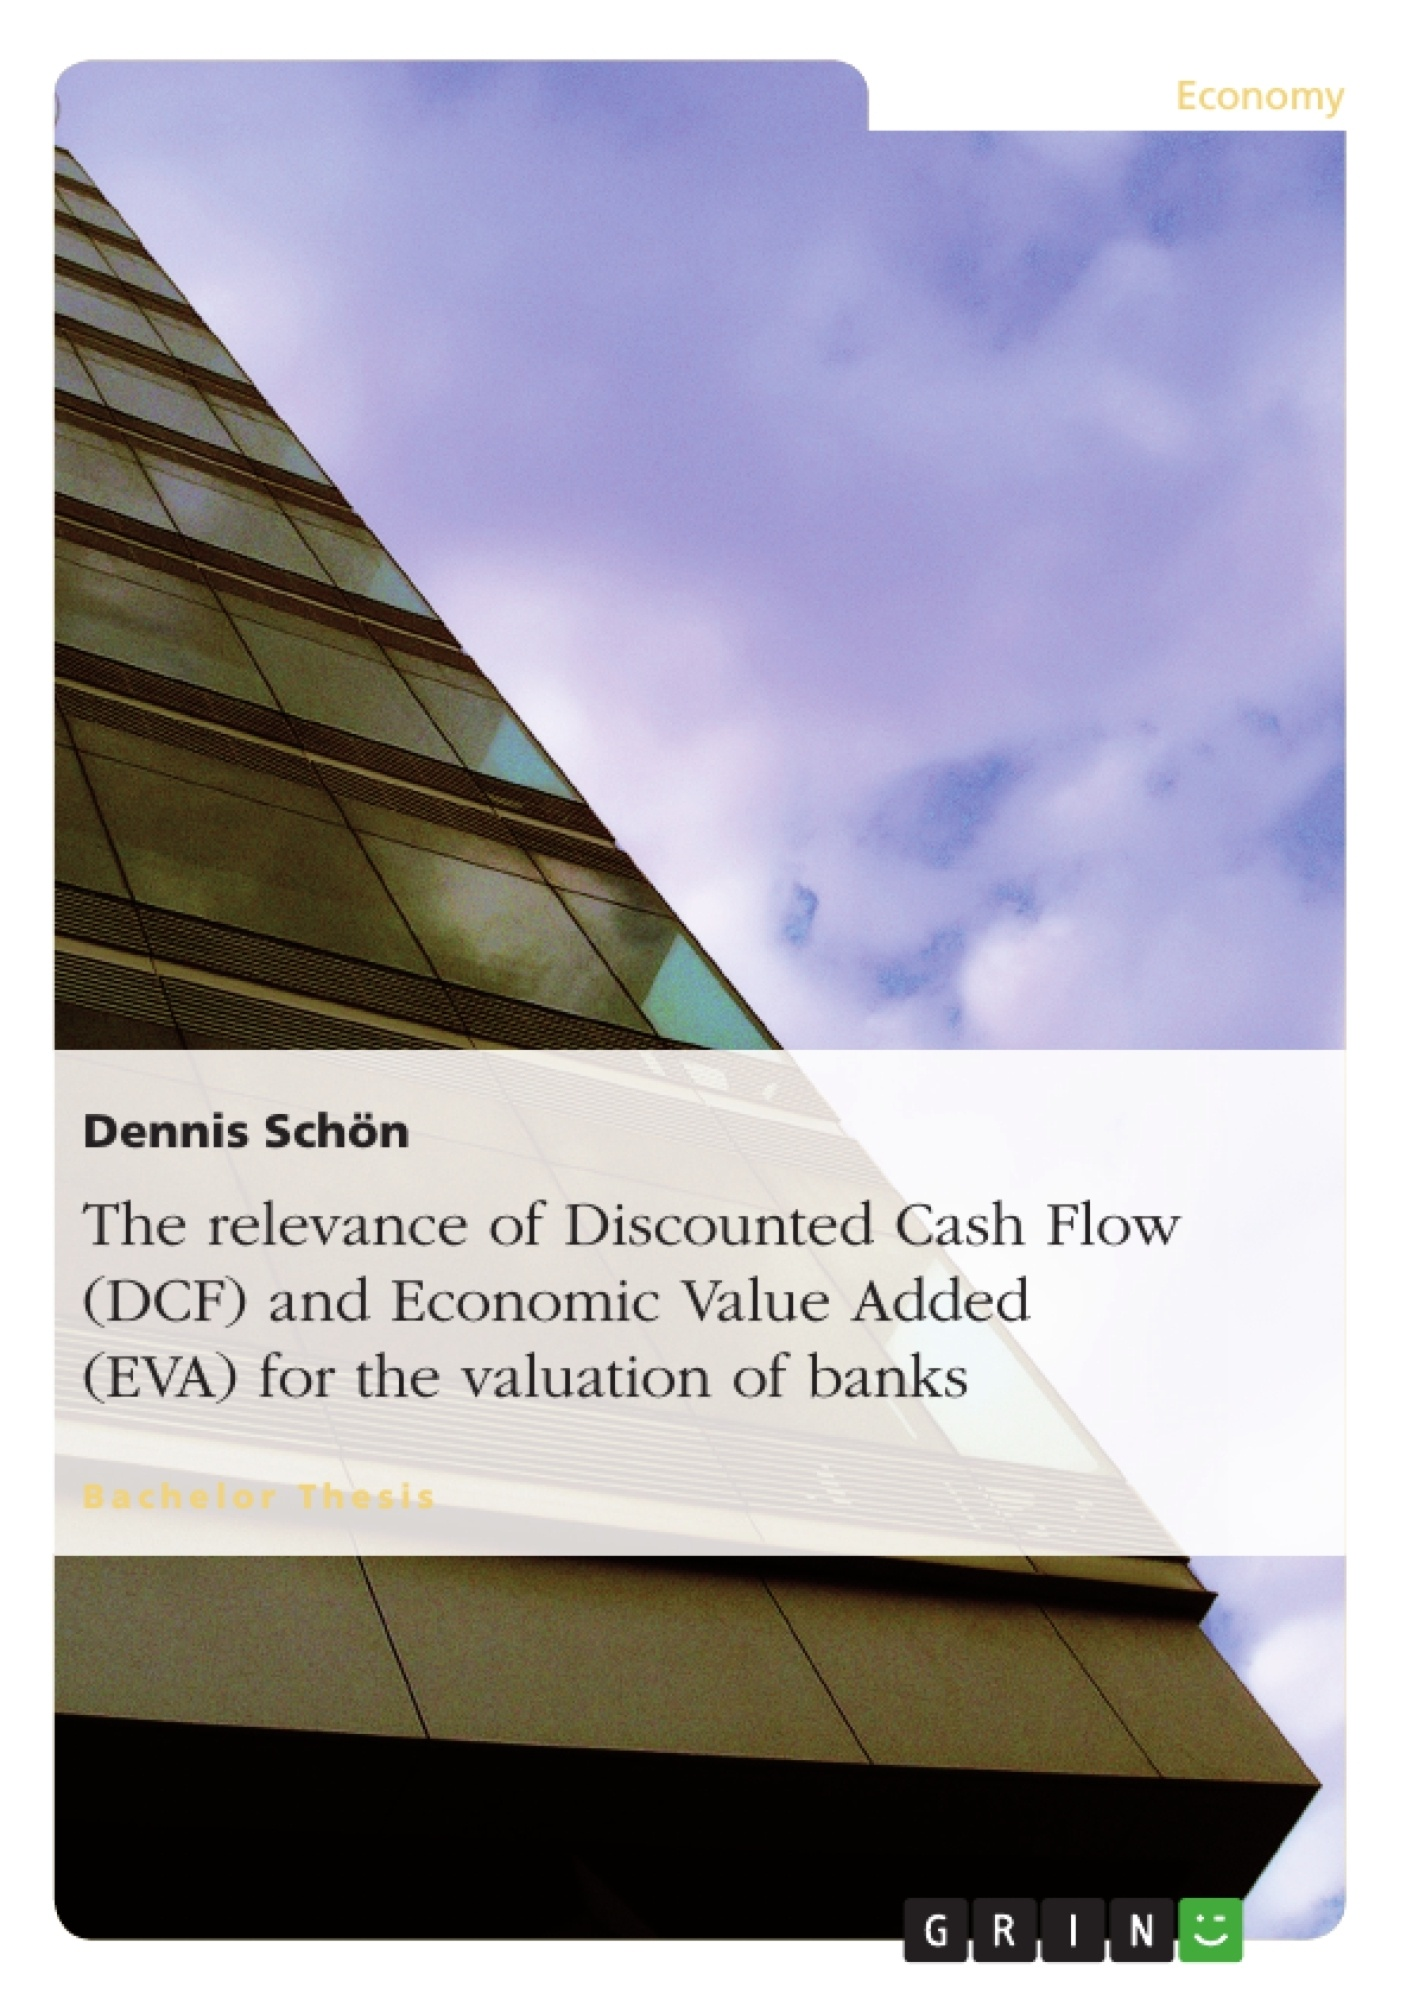 valuation cash flows phd dissertation Is the valuation of private companies, a scientific or a practical topic i am first year phd student and my topic isvaluation of private companies primary methods in their work: (a) discounted cash flow (dcf) under the income approach, and (b.